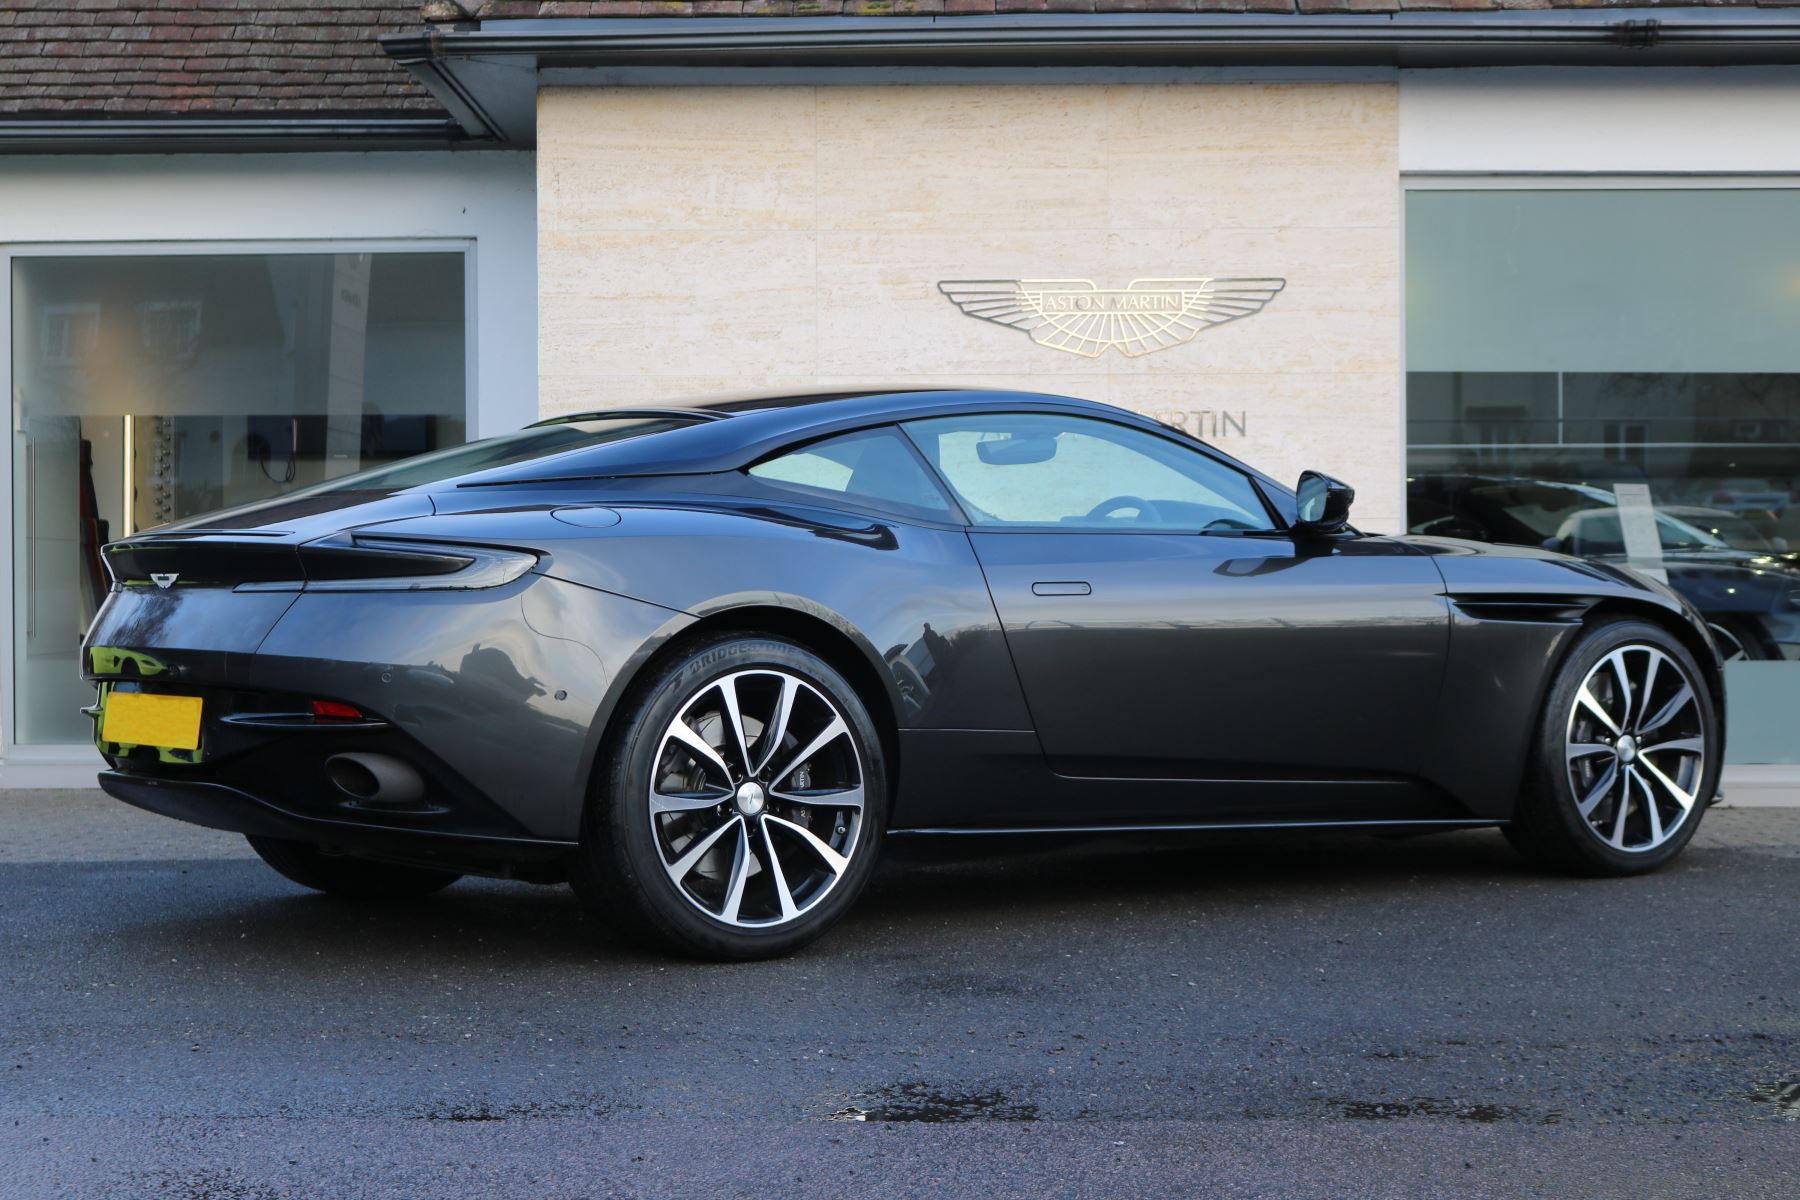 aston martin db11 v12 2dr touchtronic 5.2 automatic coupe (2017